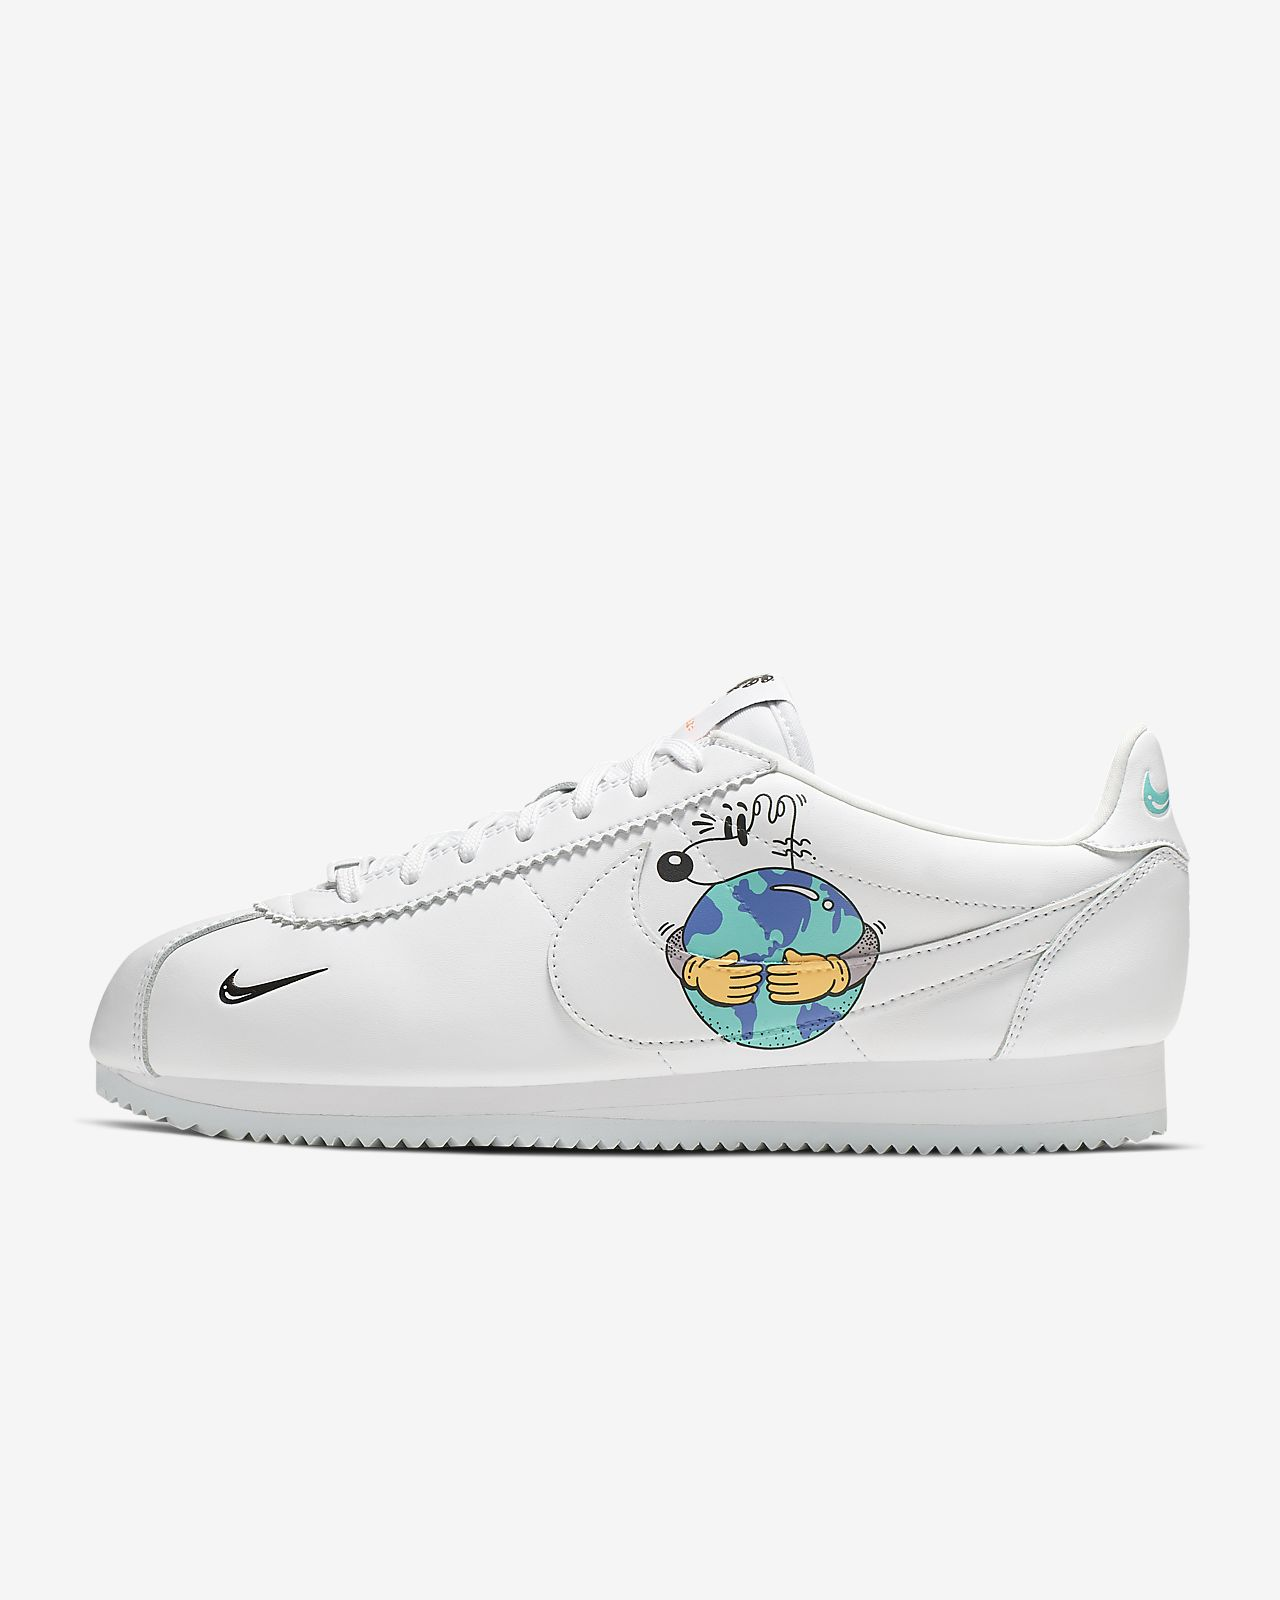 5e84ab074d Nike Cortez QS Flyleather with at least 50% leather fibre Men's Shoe